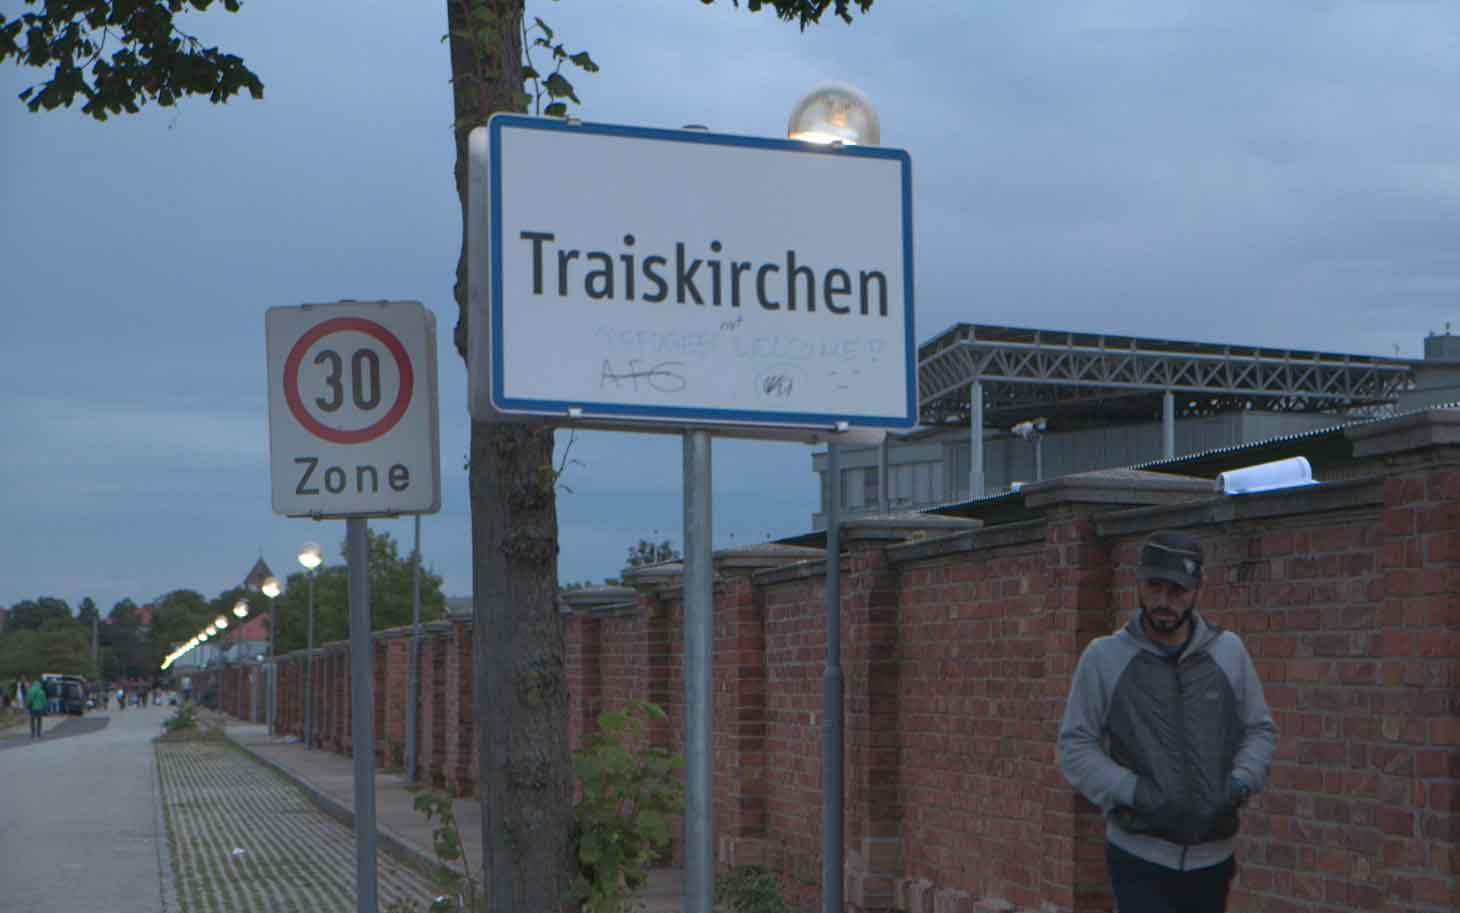 Traiskirchen refugee camp in Austria was built to accommodate 1,800 people - but is currently housing more than twice that number